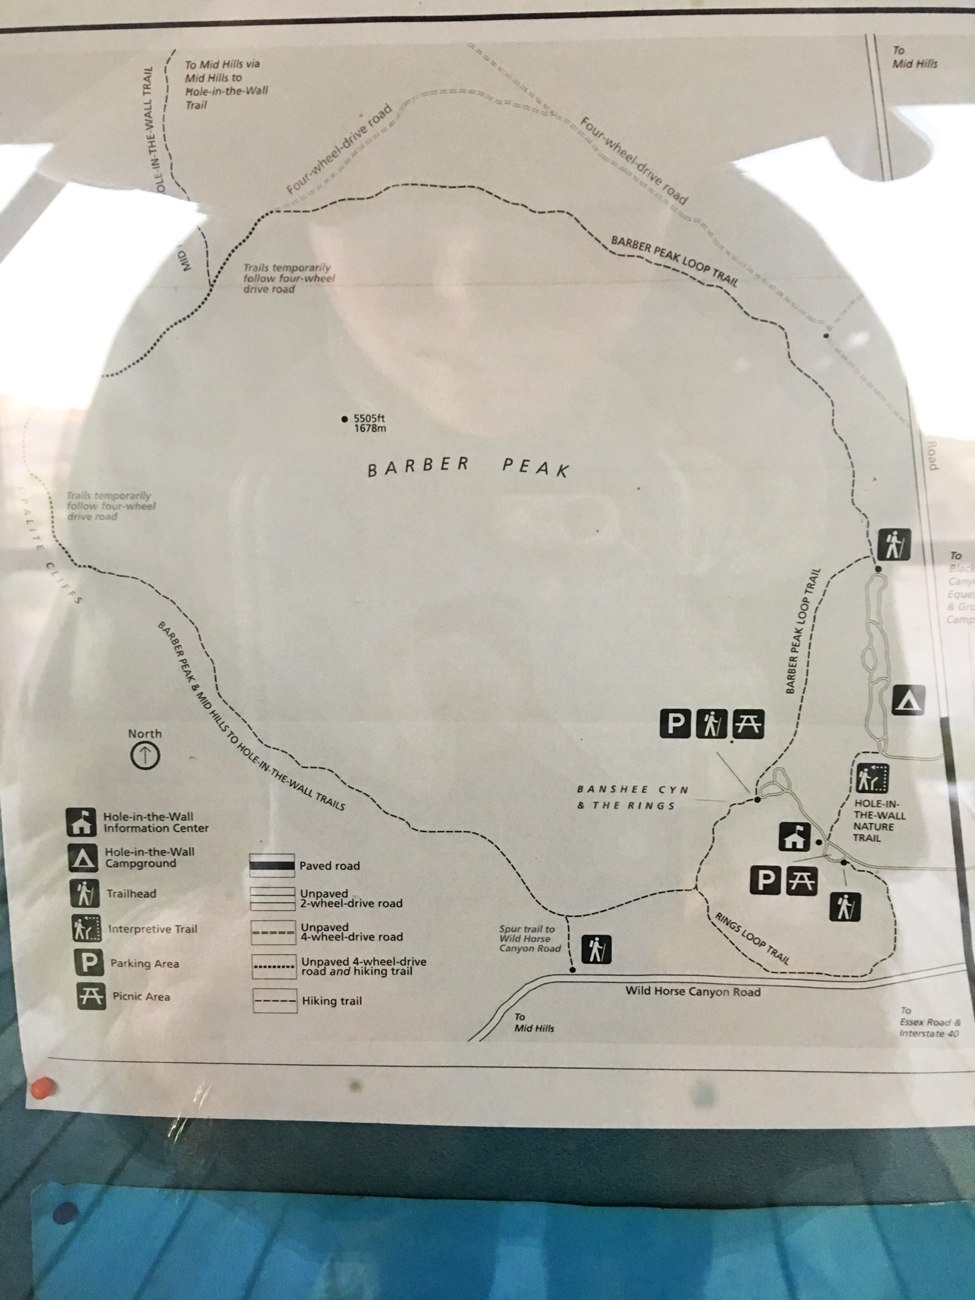 Christina's reflection on a sign of the Barber Peak Loop Trail map